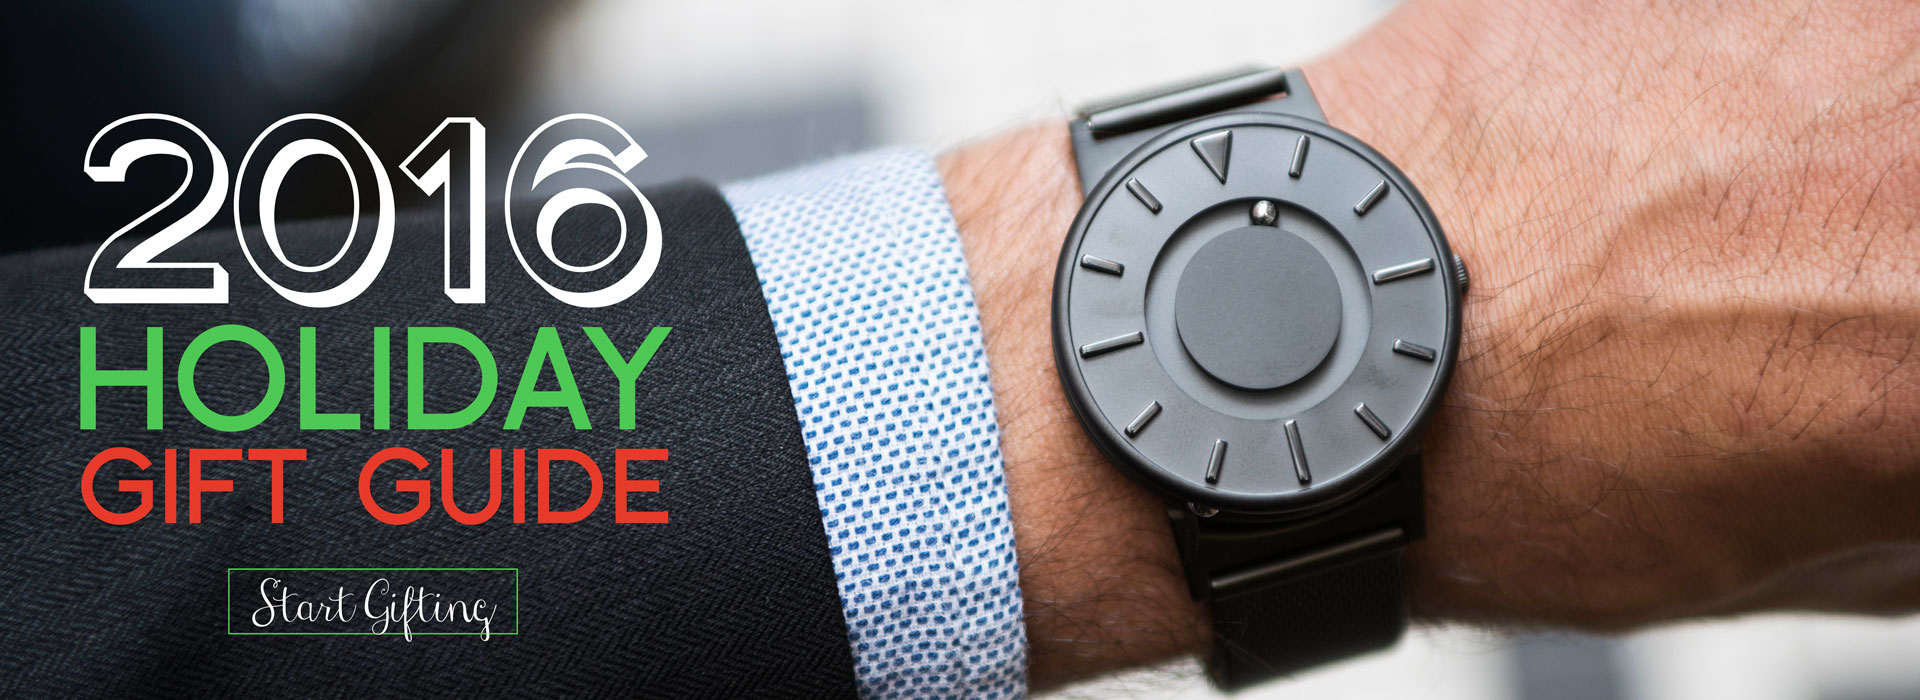 watches.com holiday gift guide for men